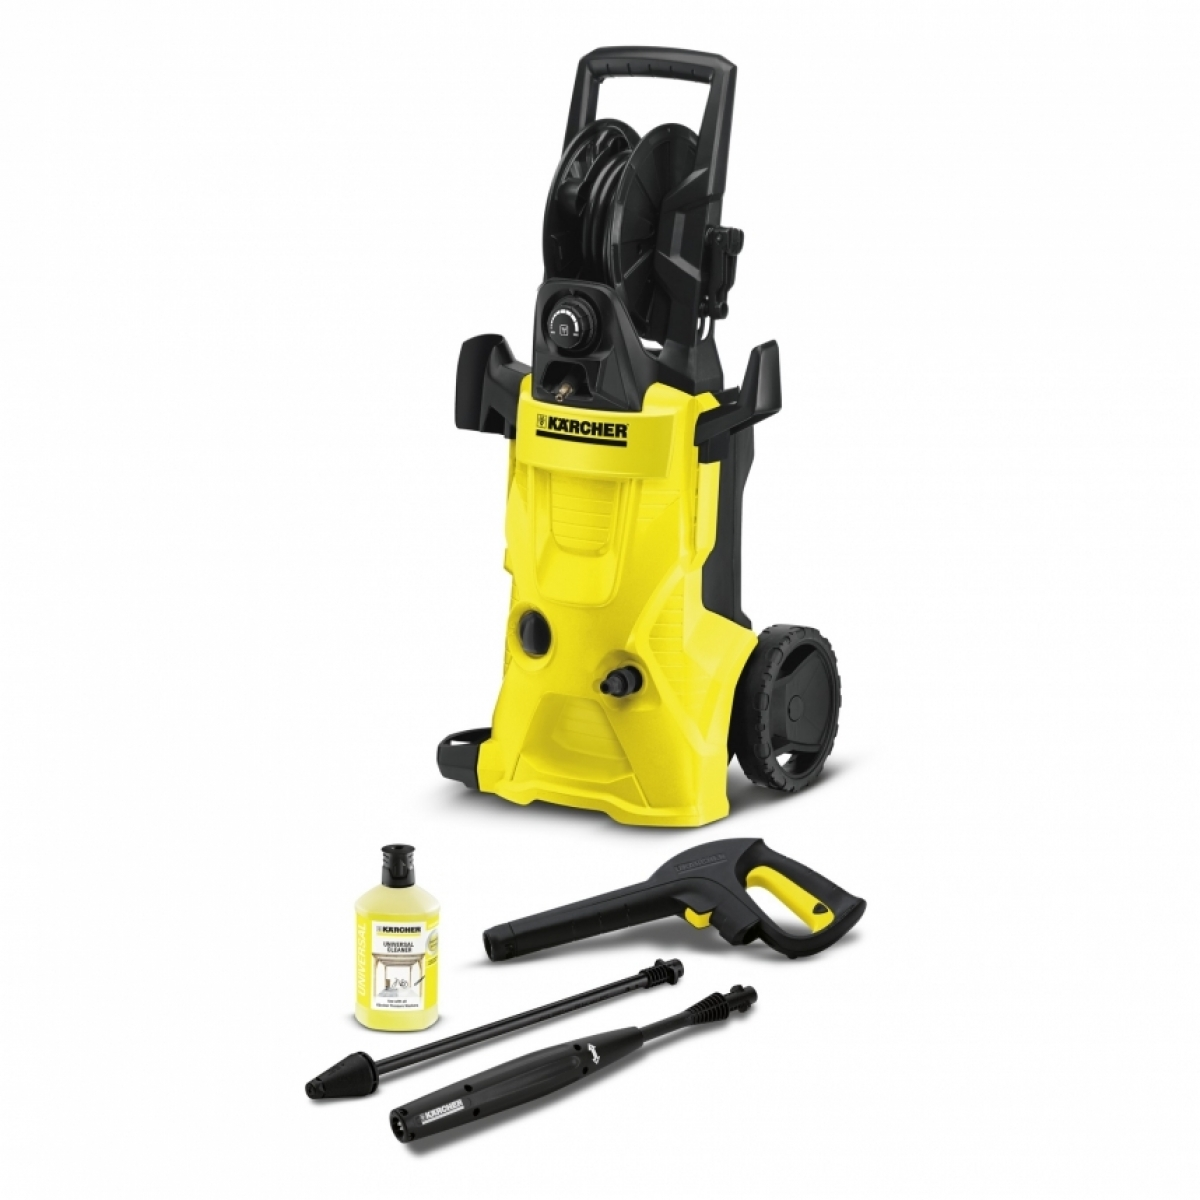 karcher pressure washer karcher k4 premium induction high pressure washer my 11070